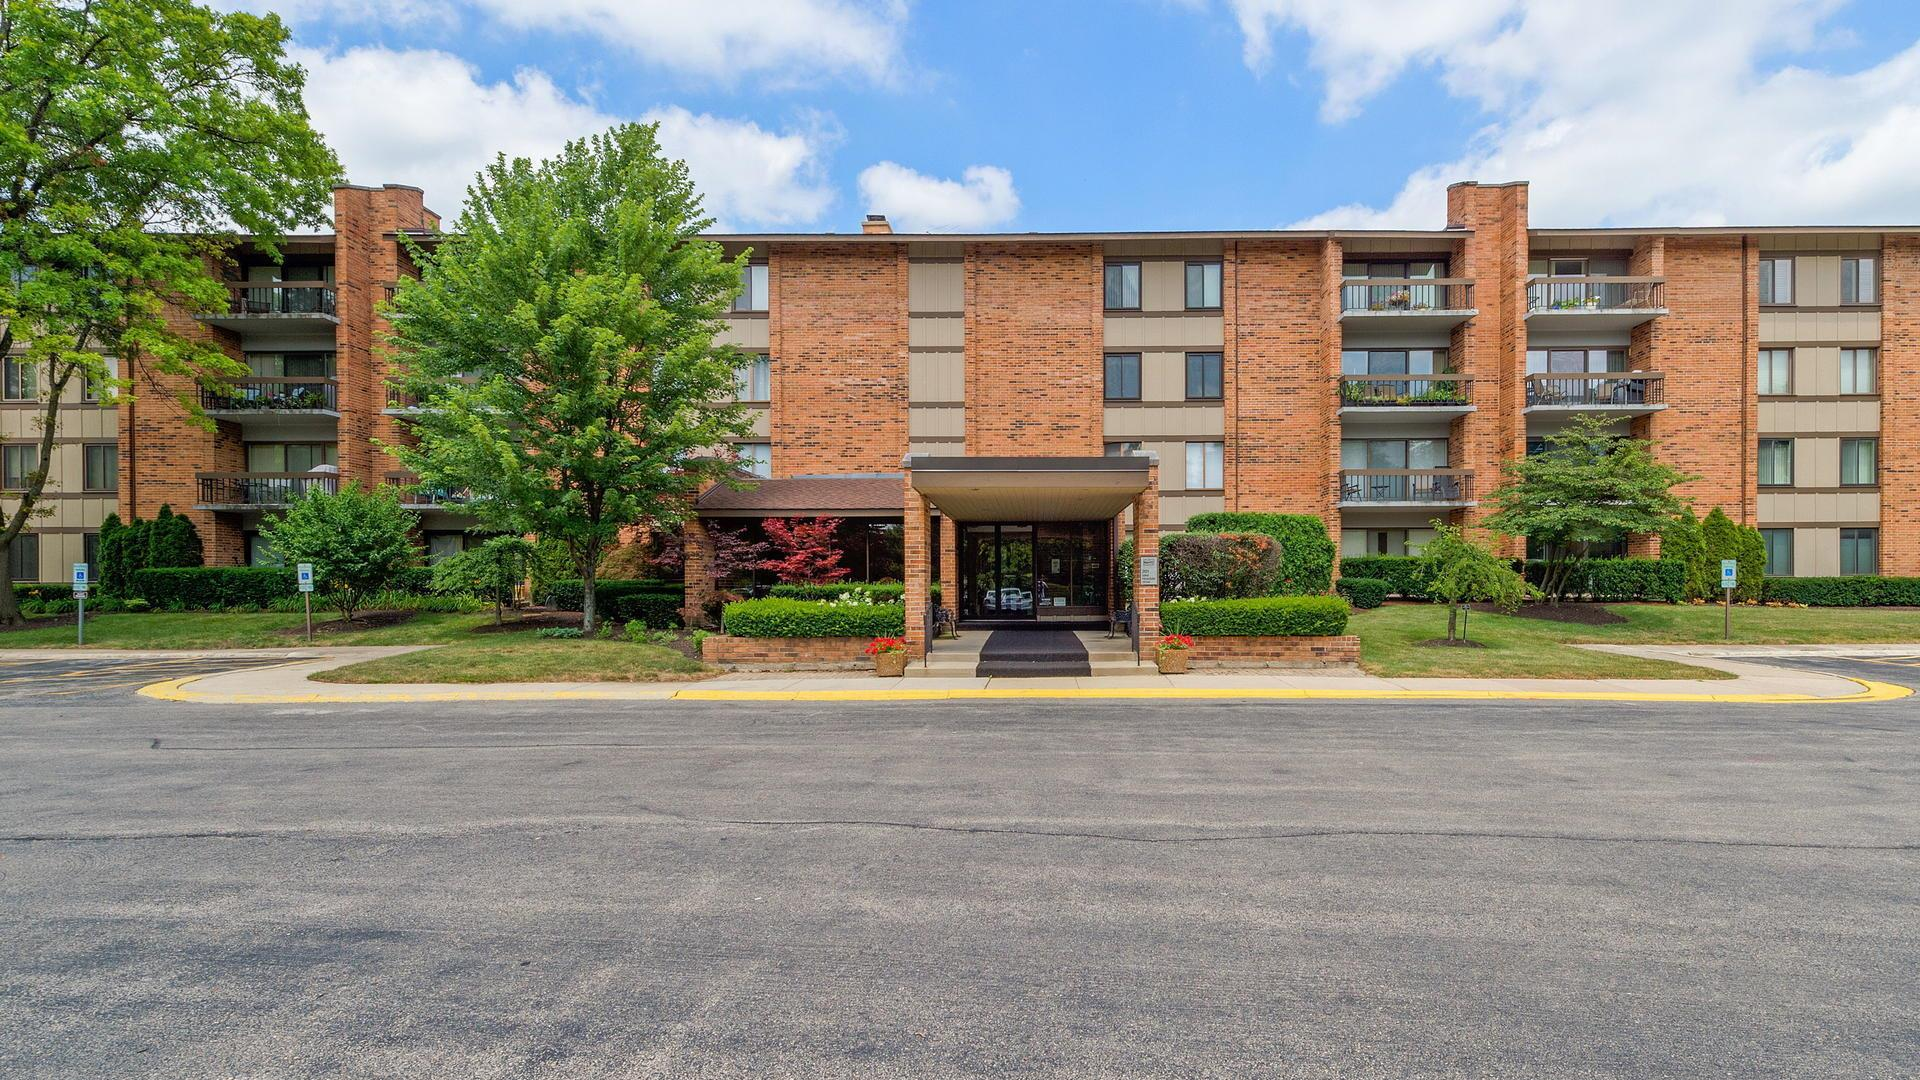 201 Lake Hinsdale Drive #206C, Willowbrook, IL 60527 - #: 11172996